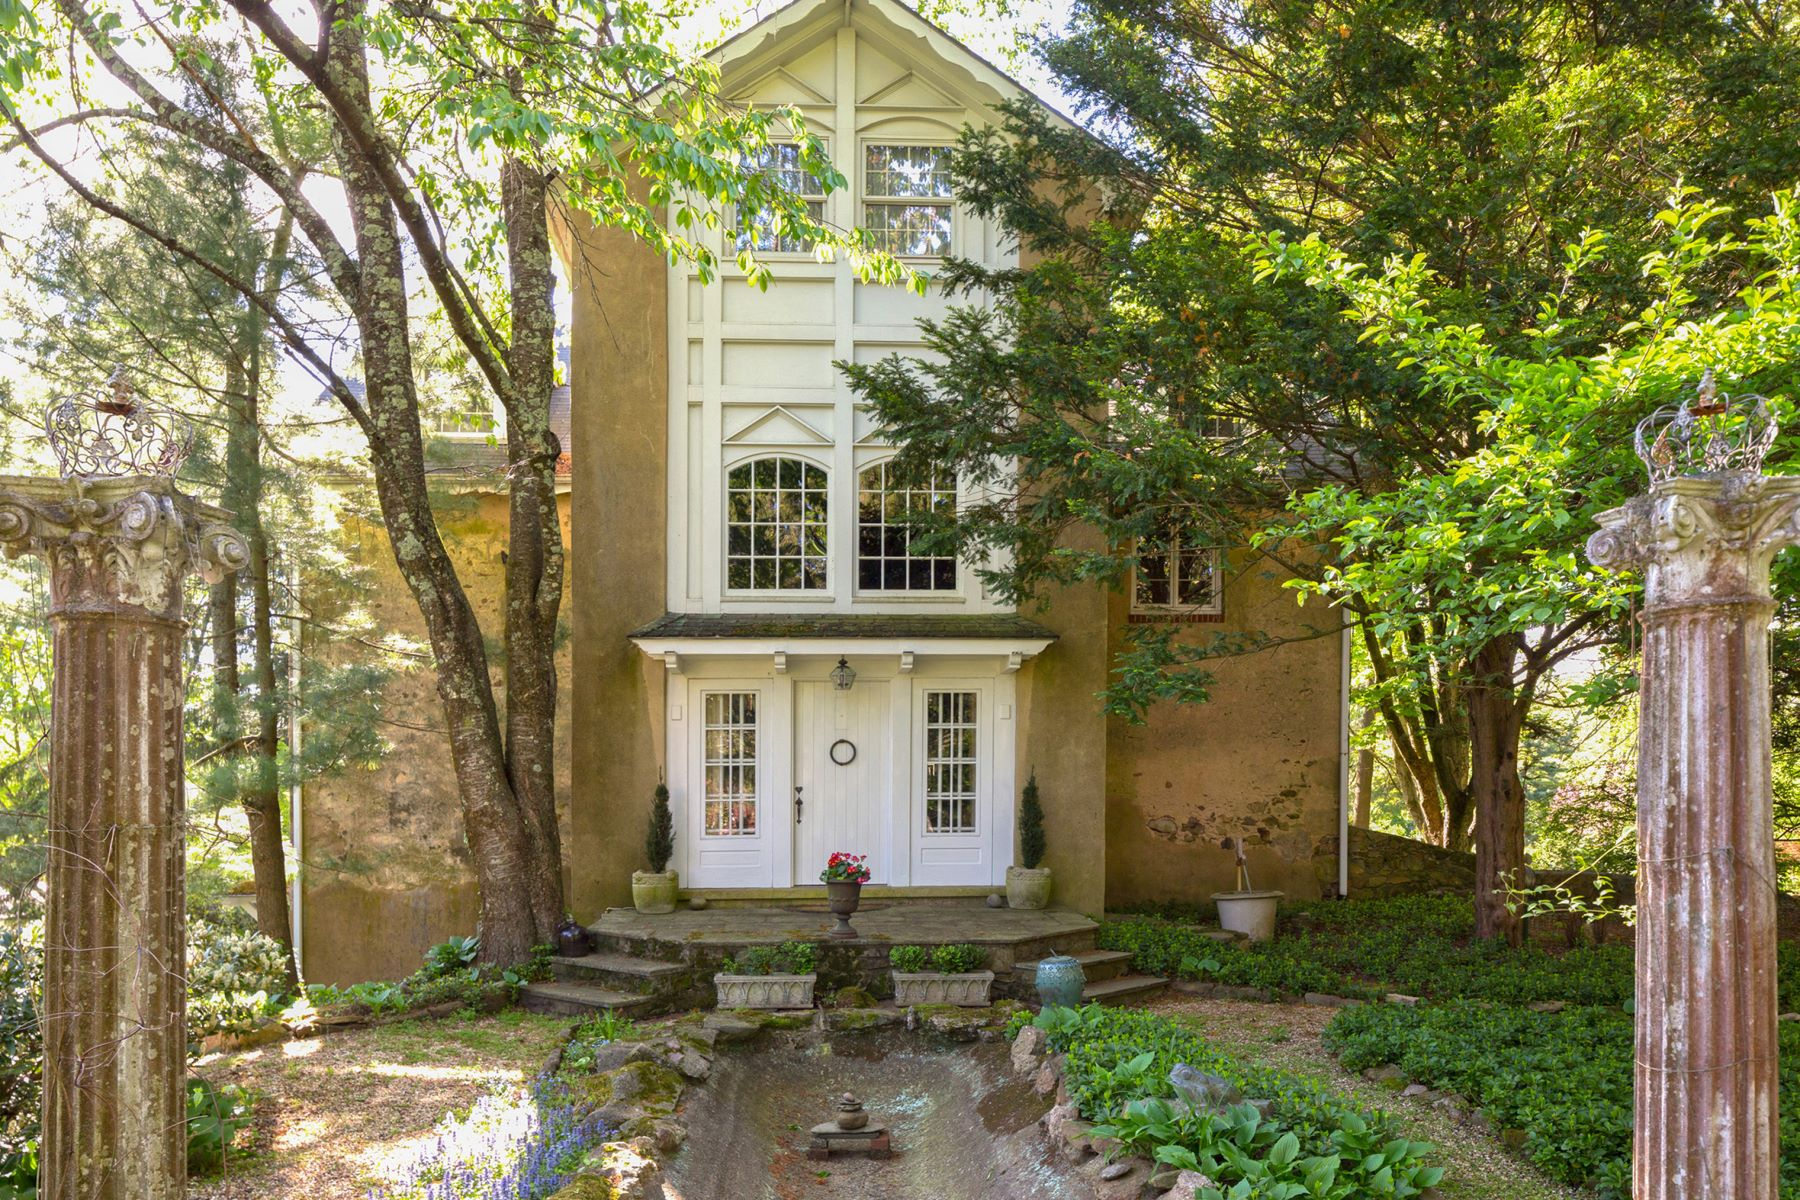 Single Family Homes for Sale at 3136 BURNT HOUSE HILL RD Doylestown, Pennsylvania 18902 United States